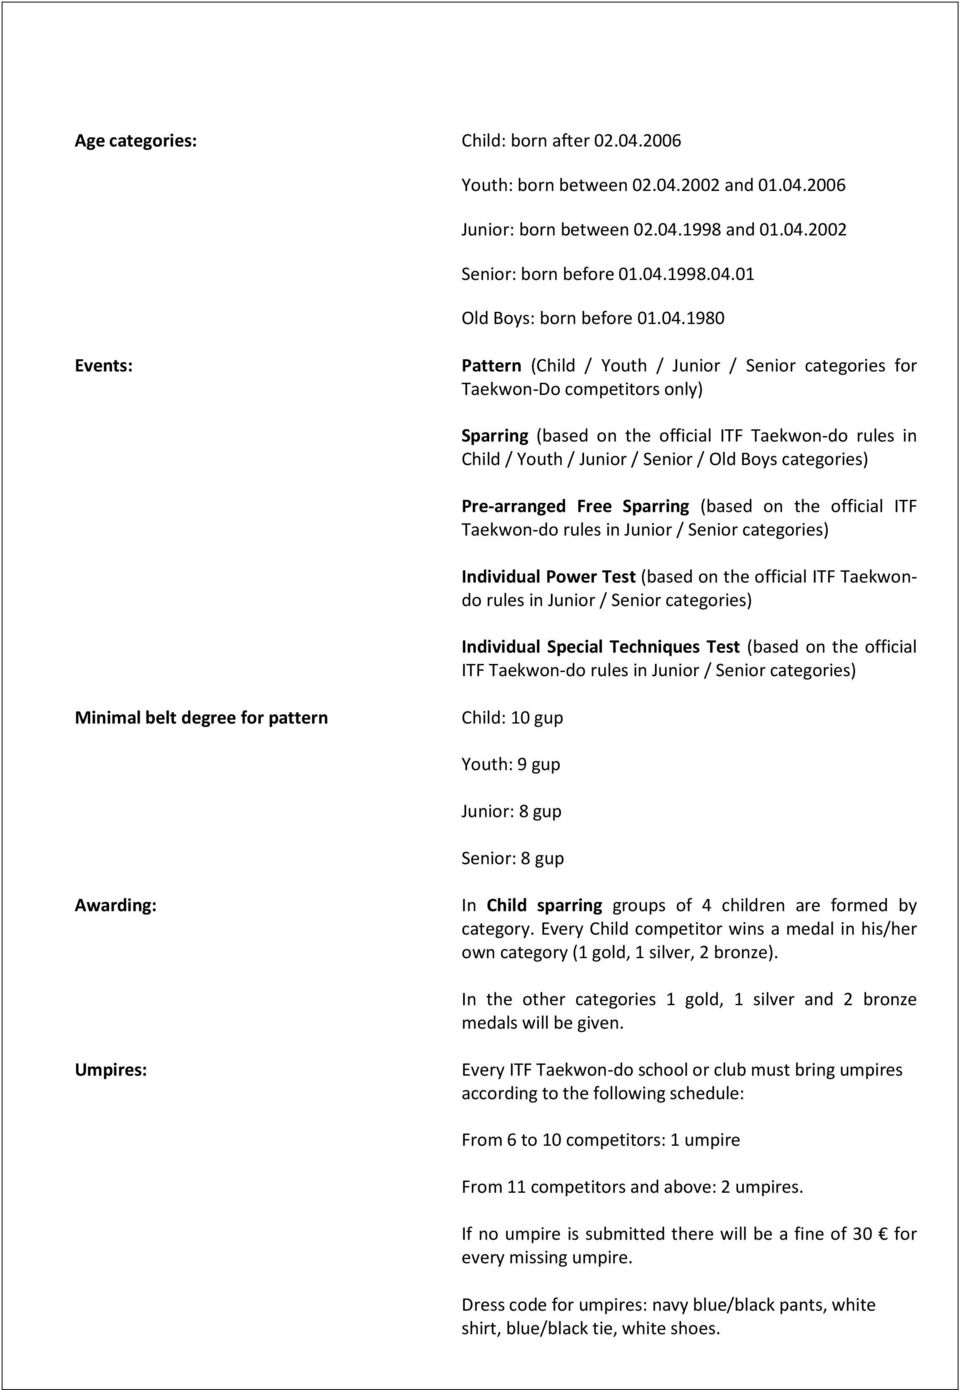 categories) Pre-arranged Free Sparring (based on the official ITF Taekwon-do rules in Junior / Senior categories) Individual Power Test (based on the official ITF Taekwondo rules in Junior / Senior